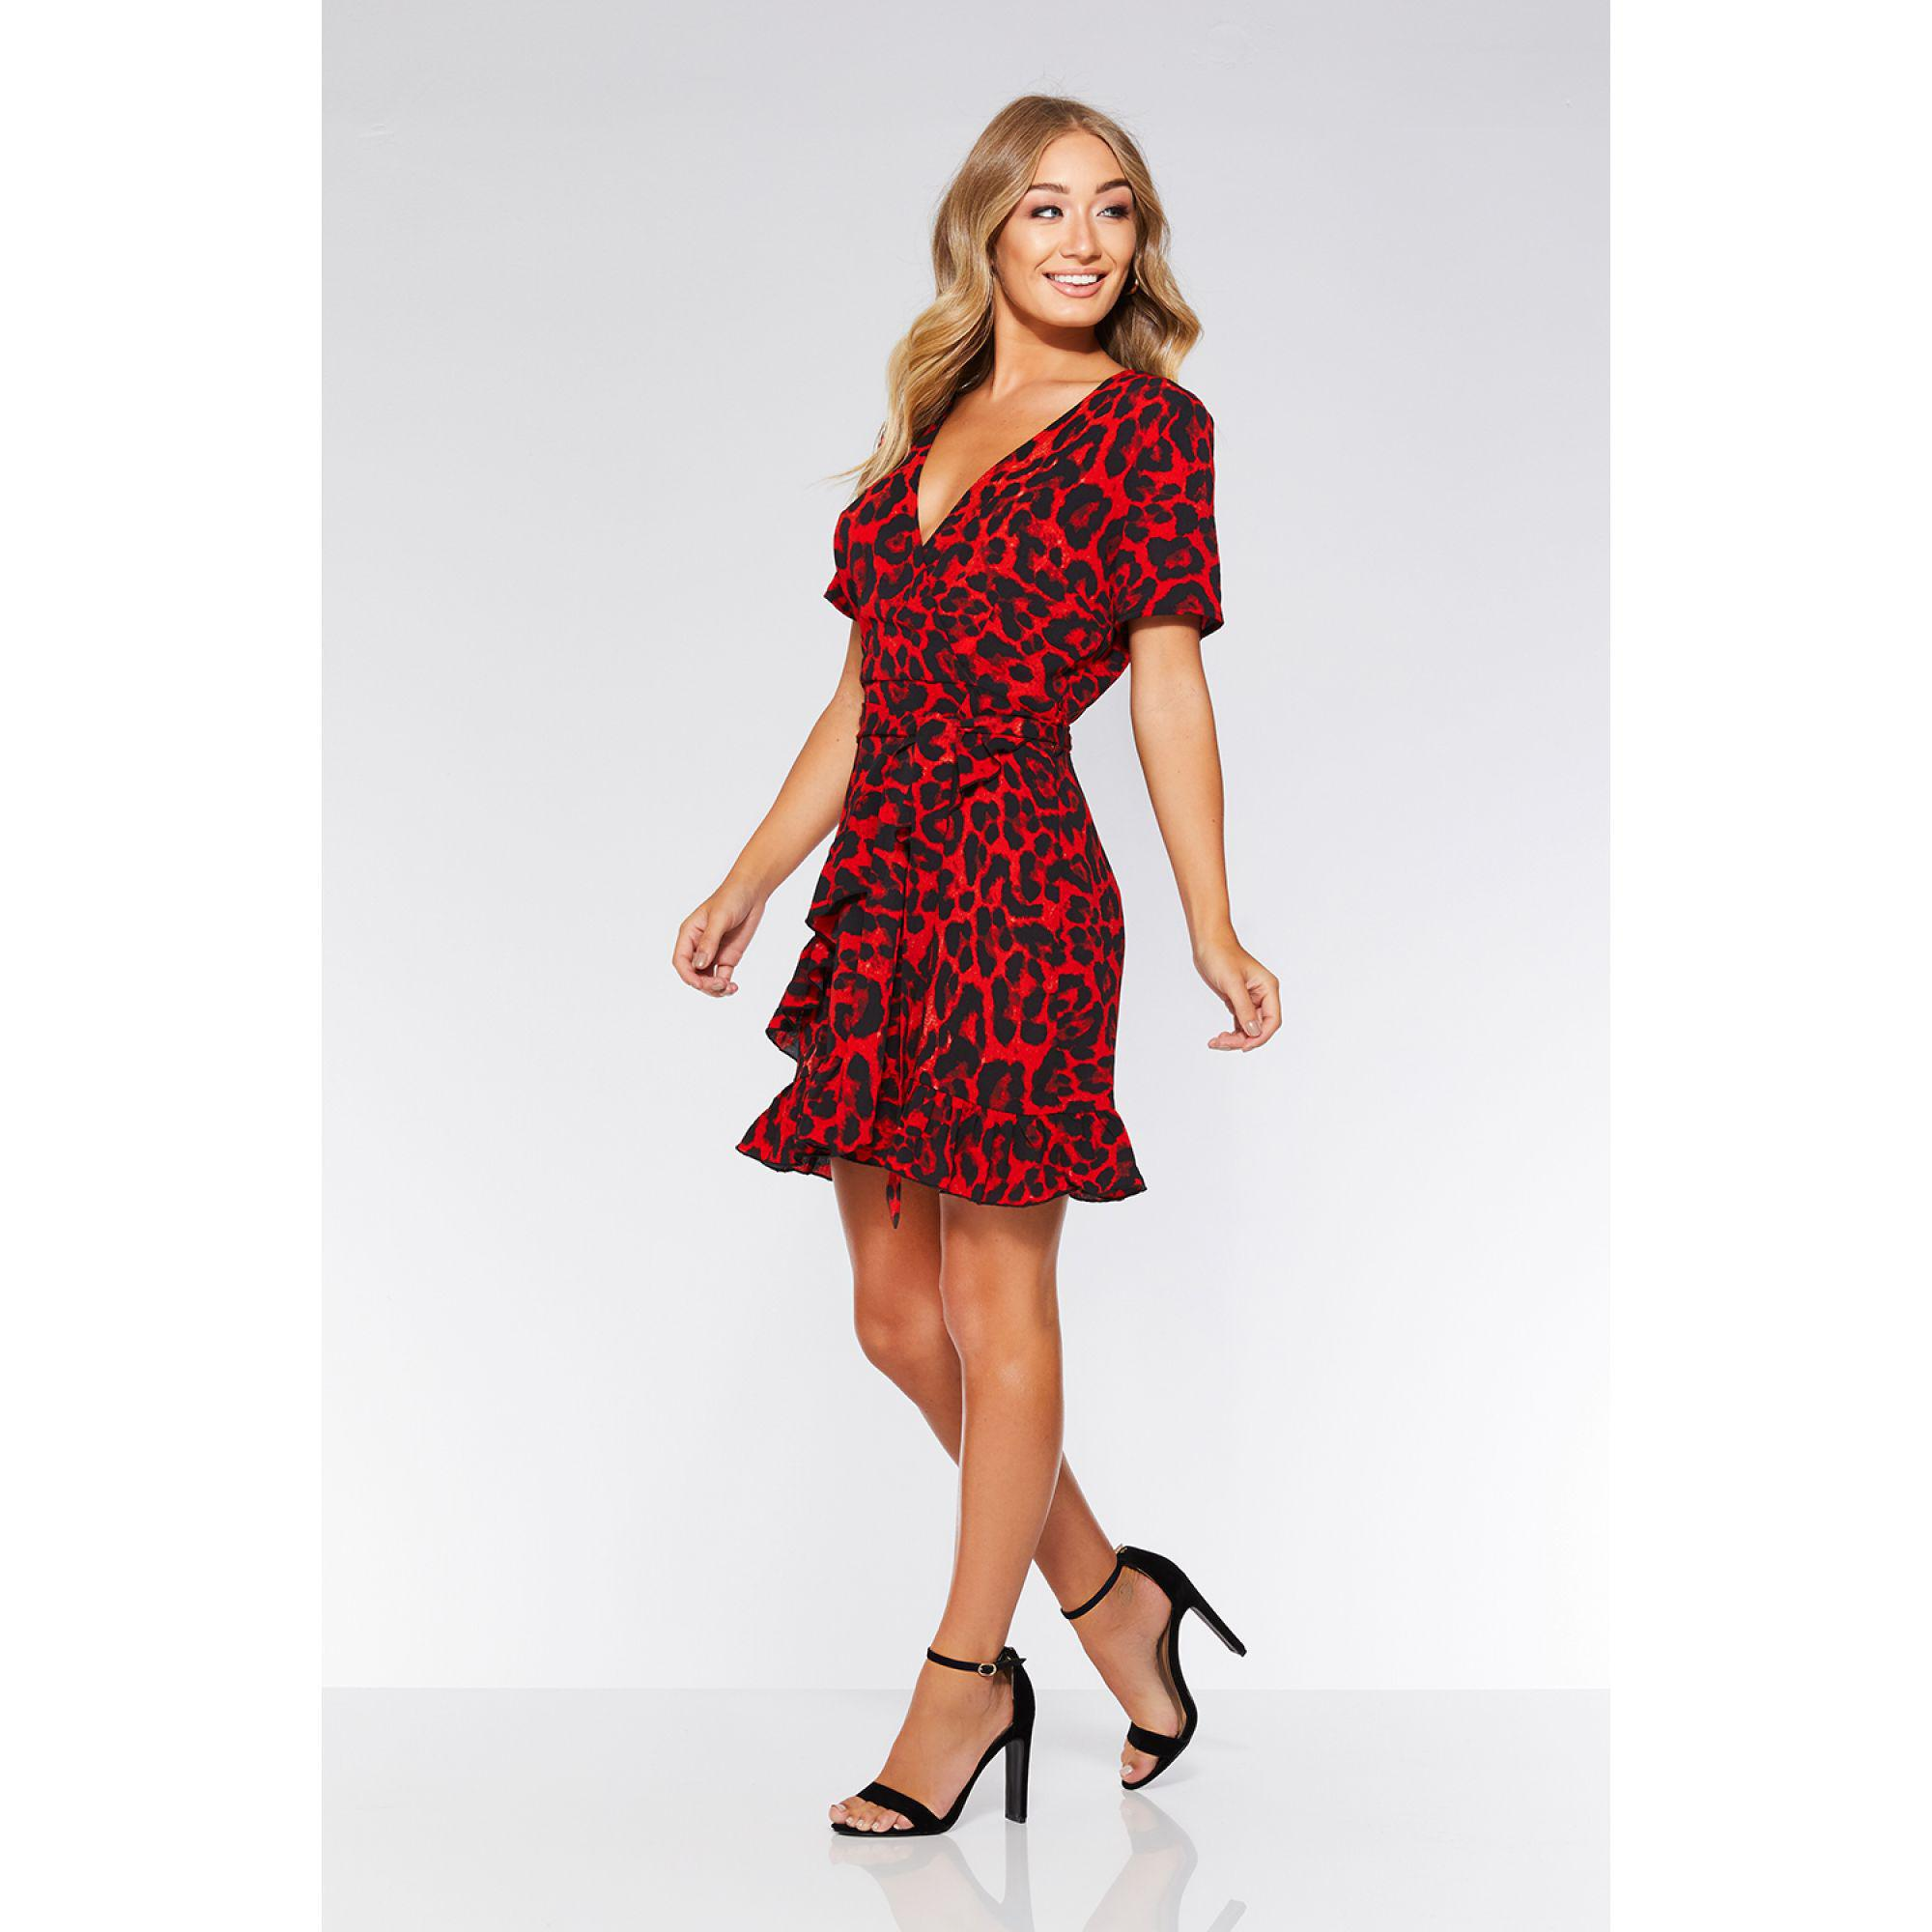 5a3a0d592 Quiz Olivia's Red And Black Leopard Print Wrap Dress in Red - Lyst